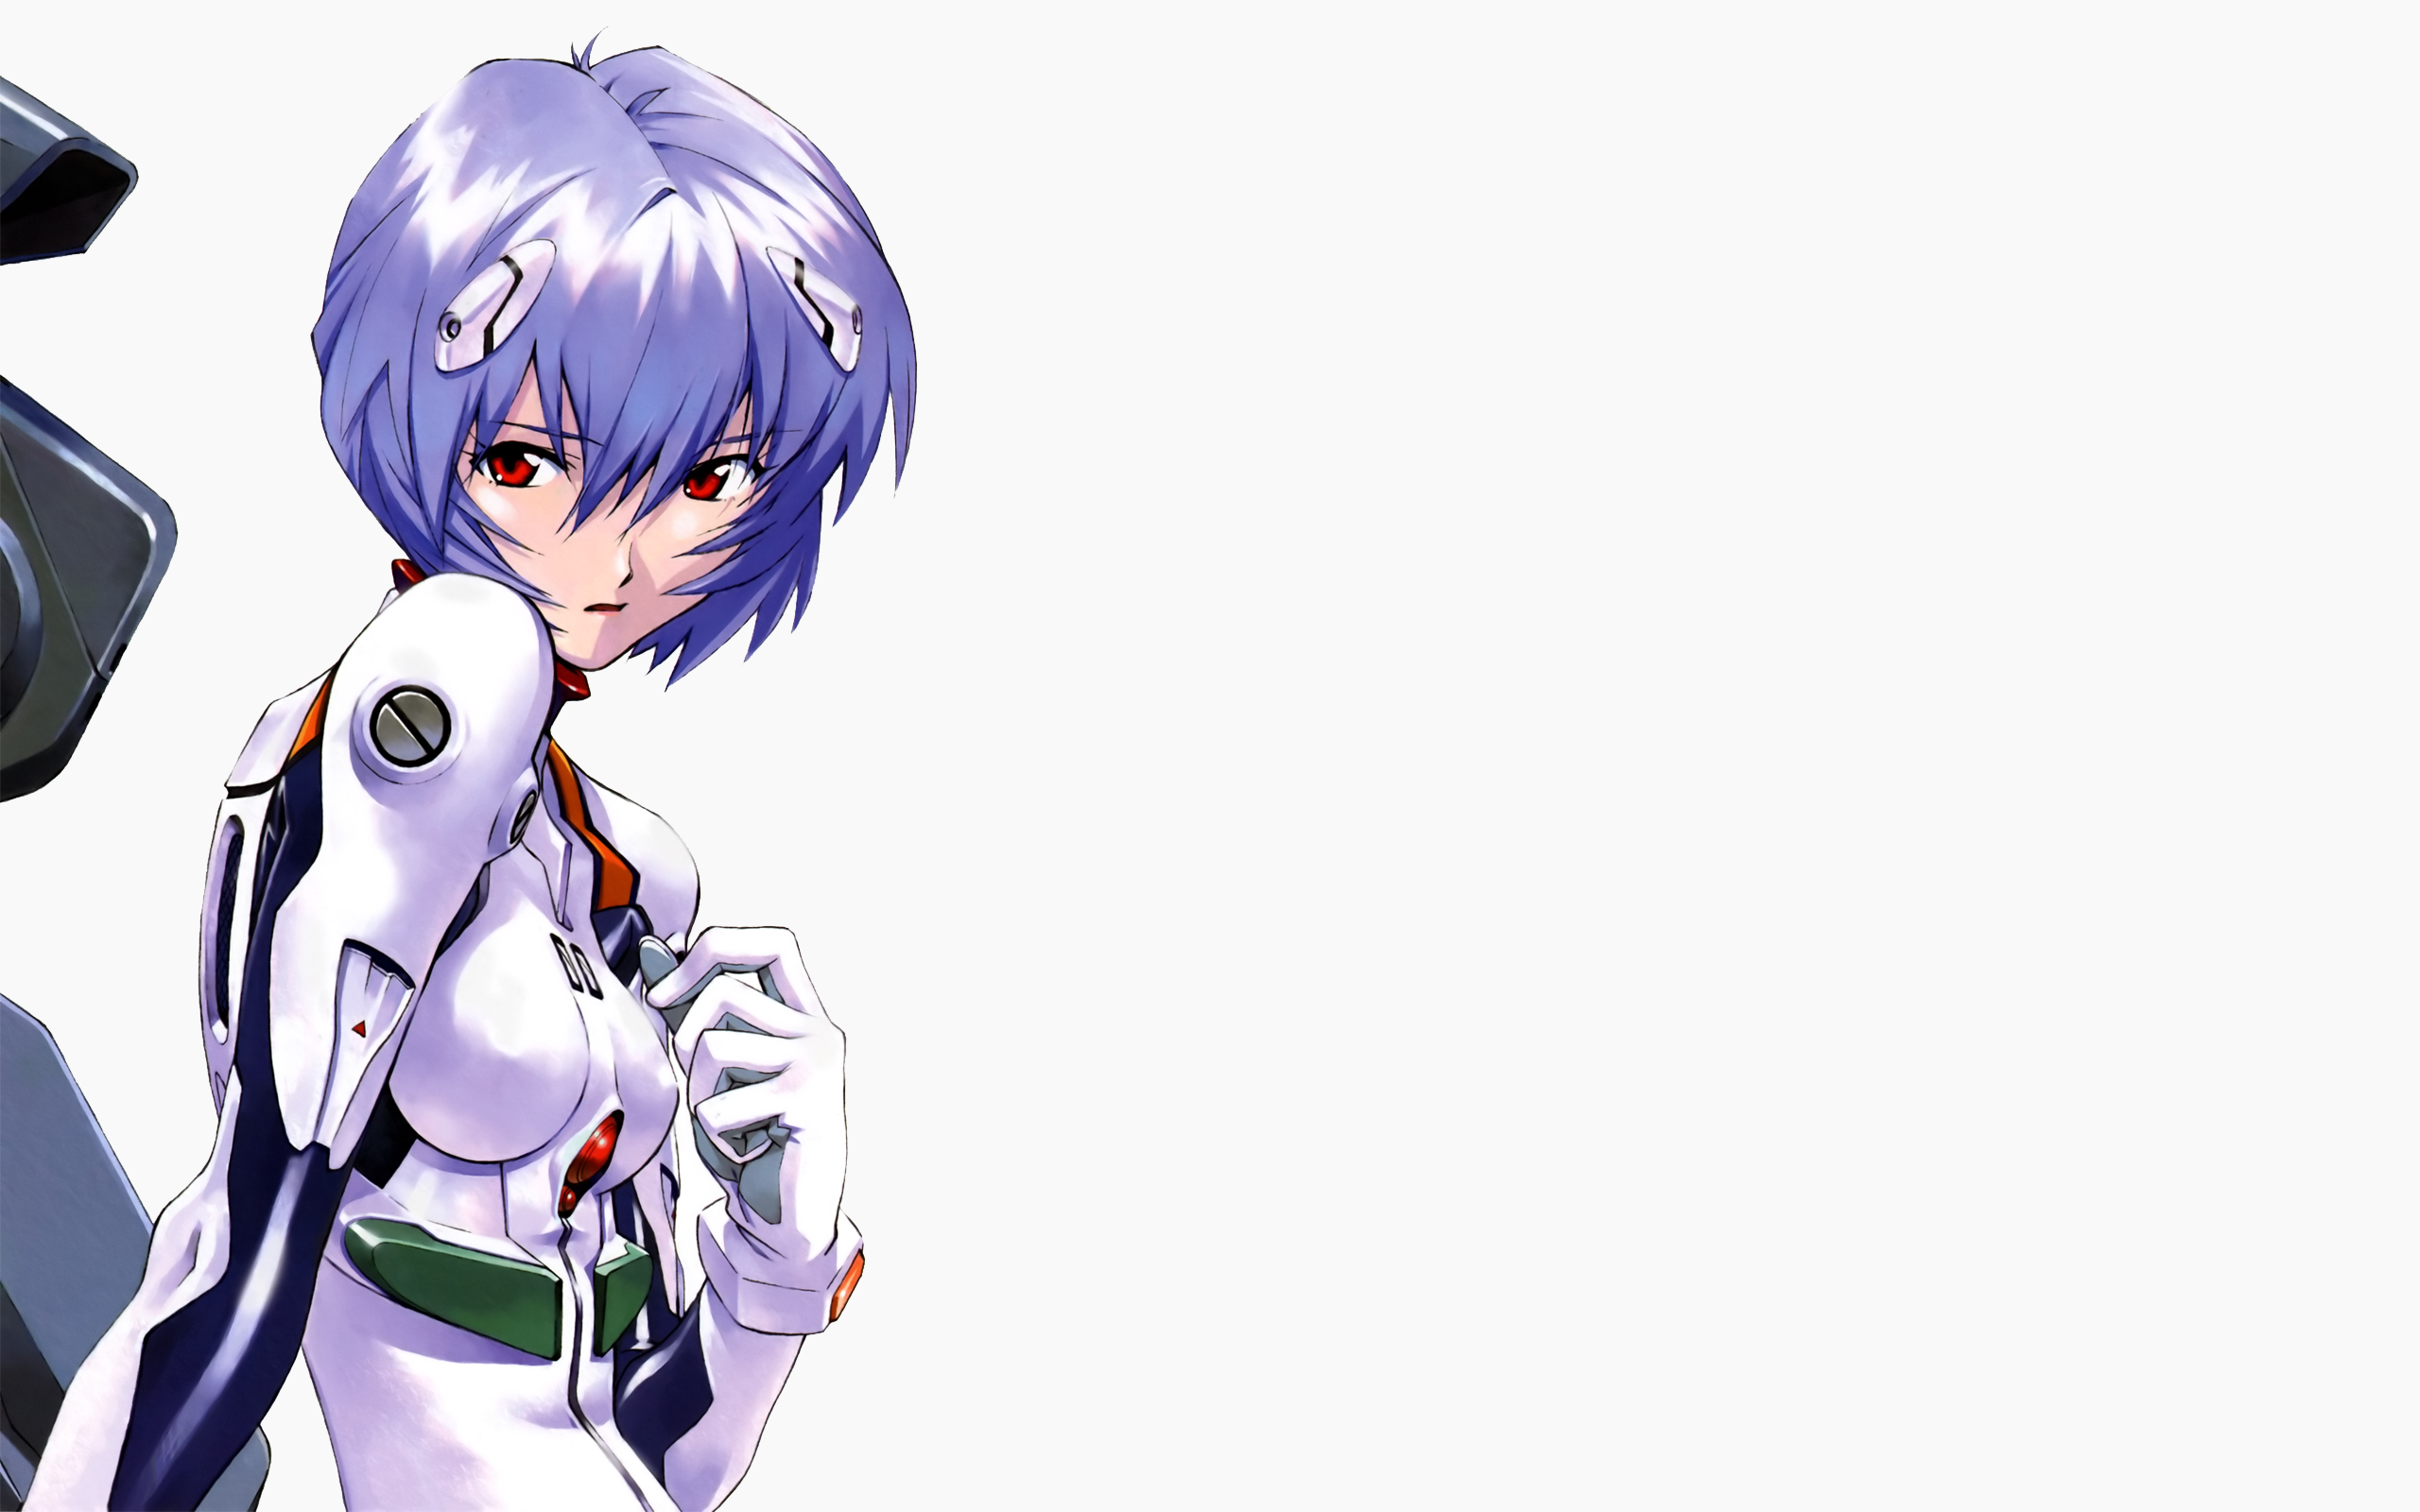 Neon Genesis Evangelion Images Rei Ayanami HD Wallpaper And Background Photos